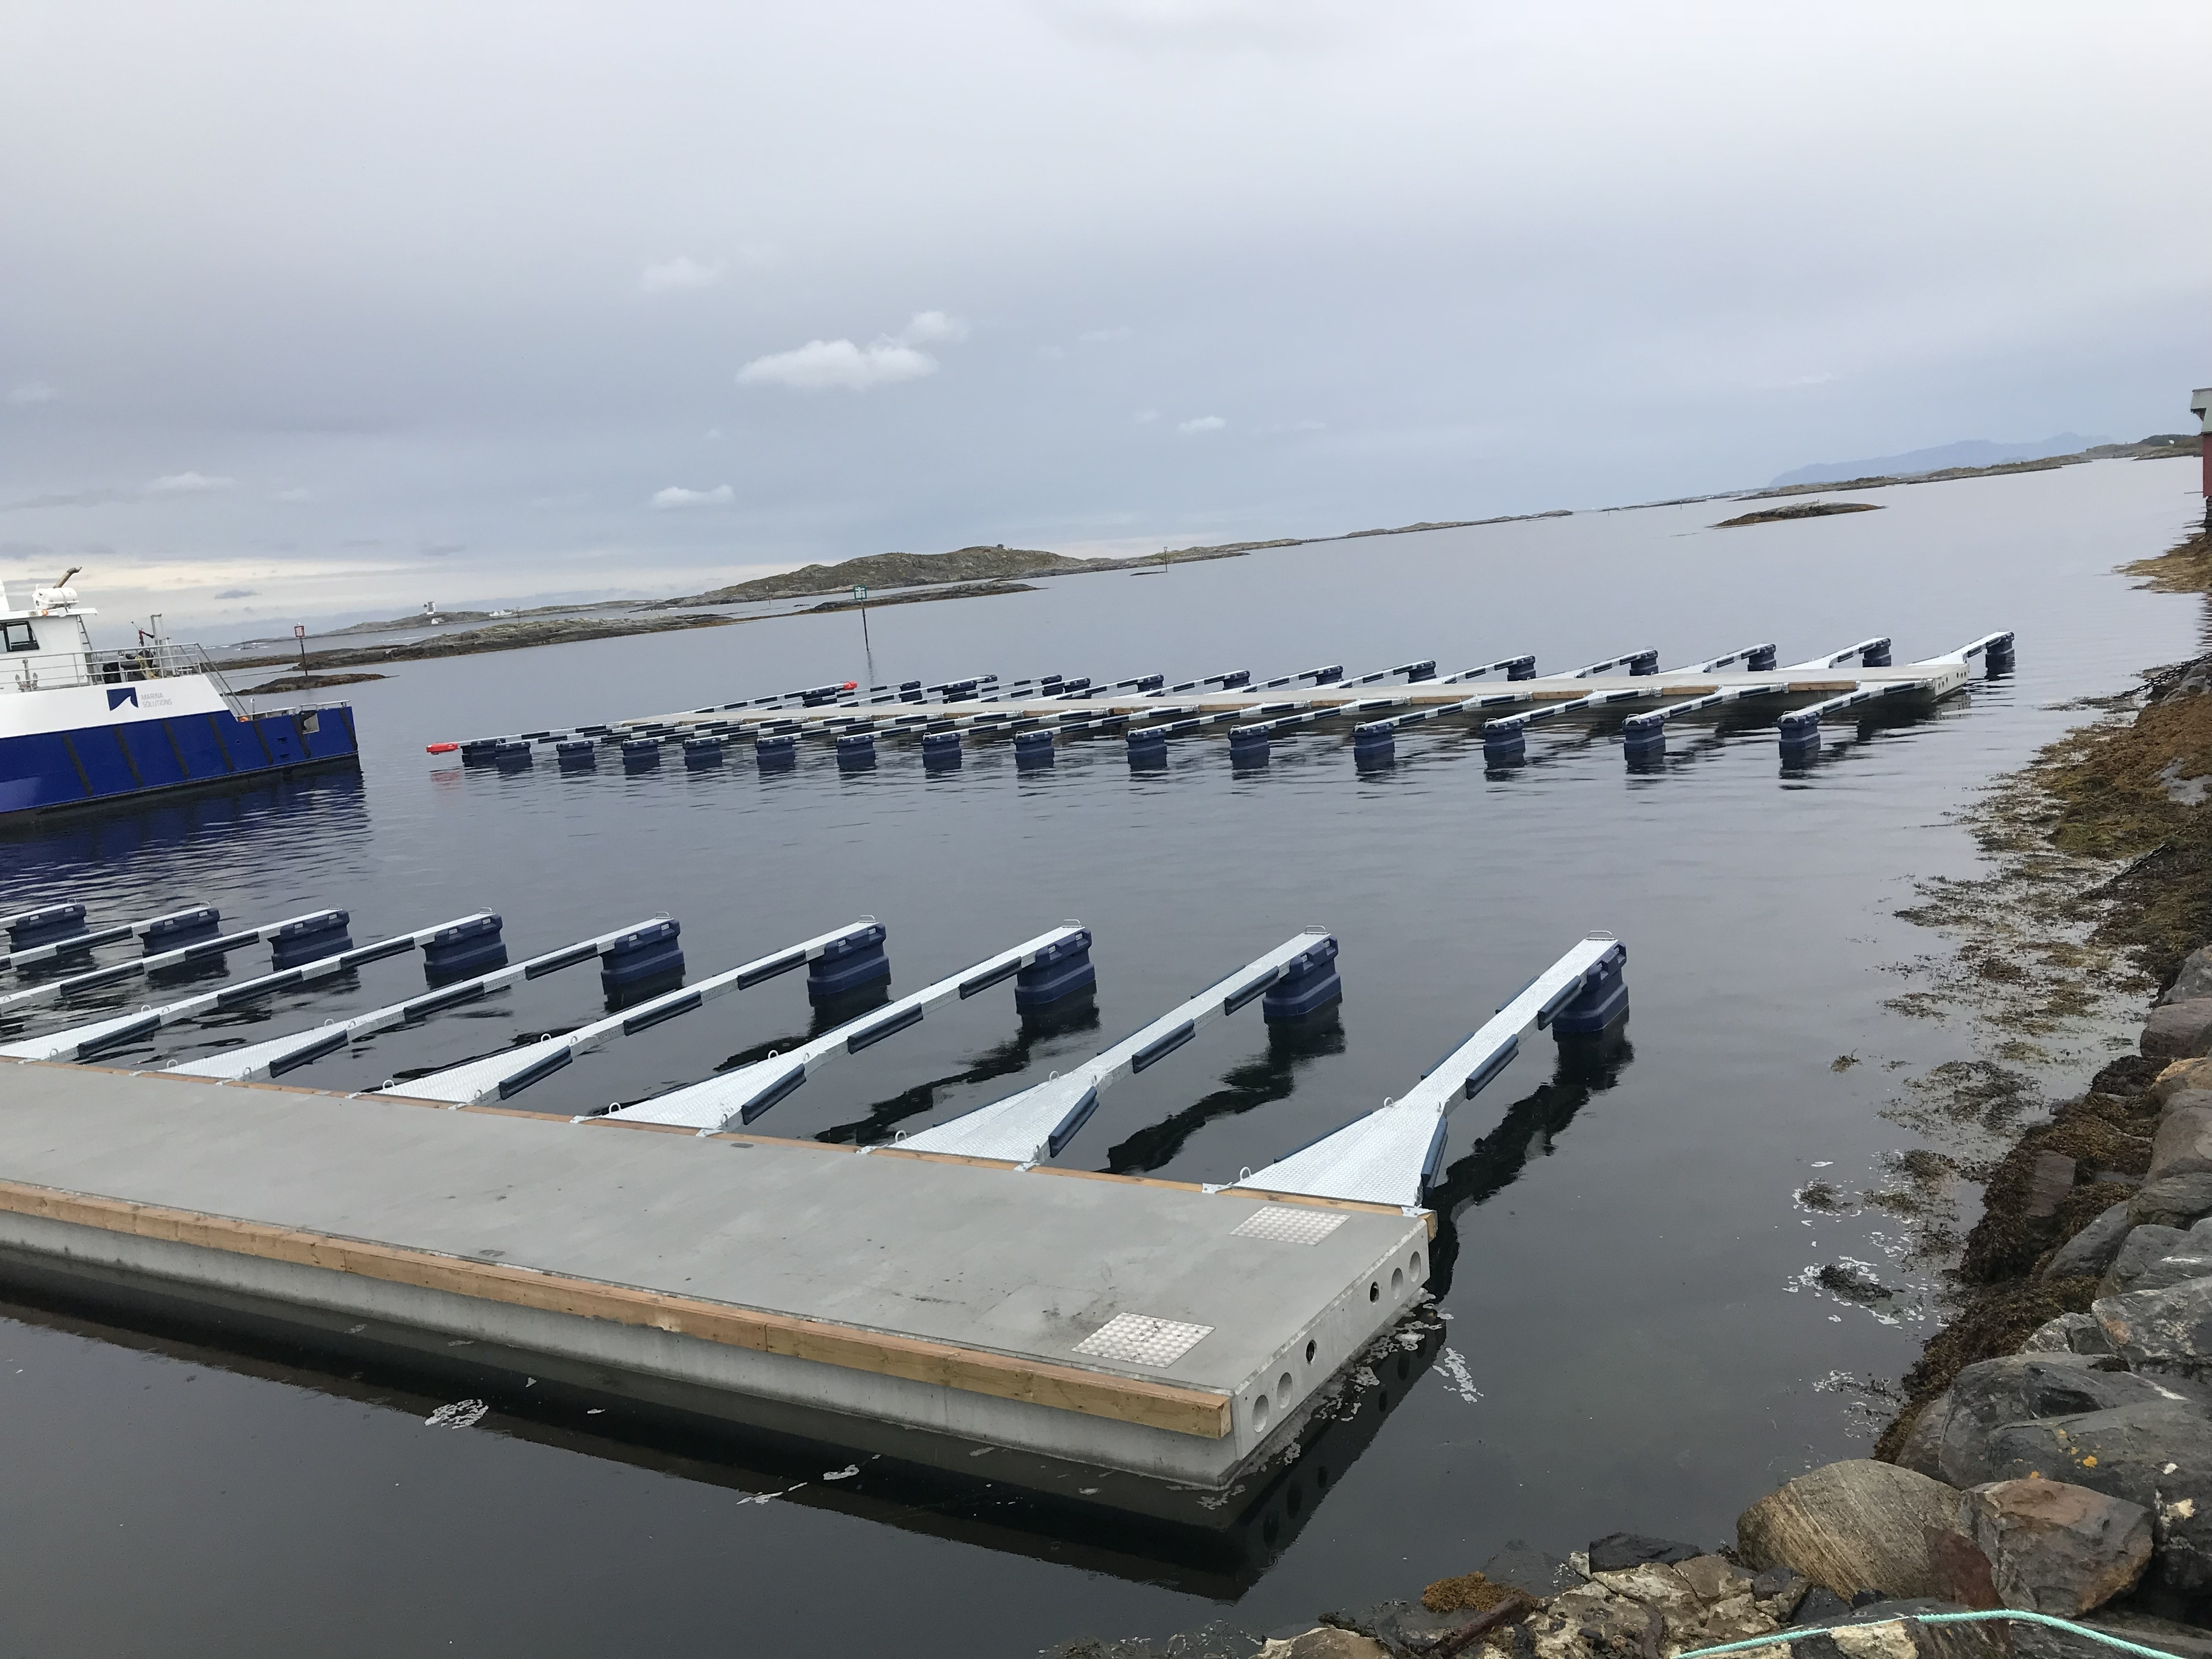 https://www.marinasolutions.no/uploads/Kråkholmen-småbåtlag-marina-solutions-marina-ocean.jpg